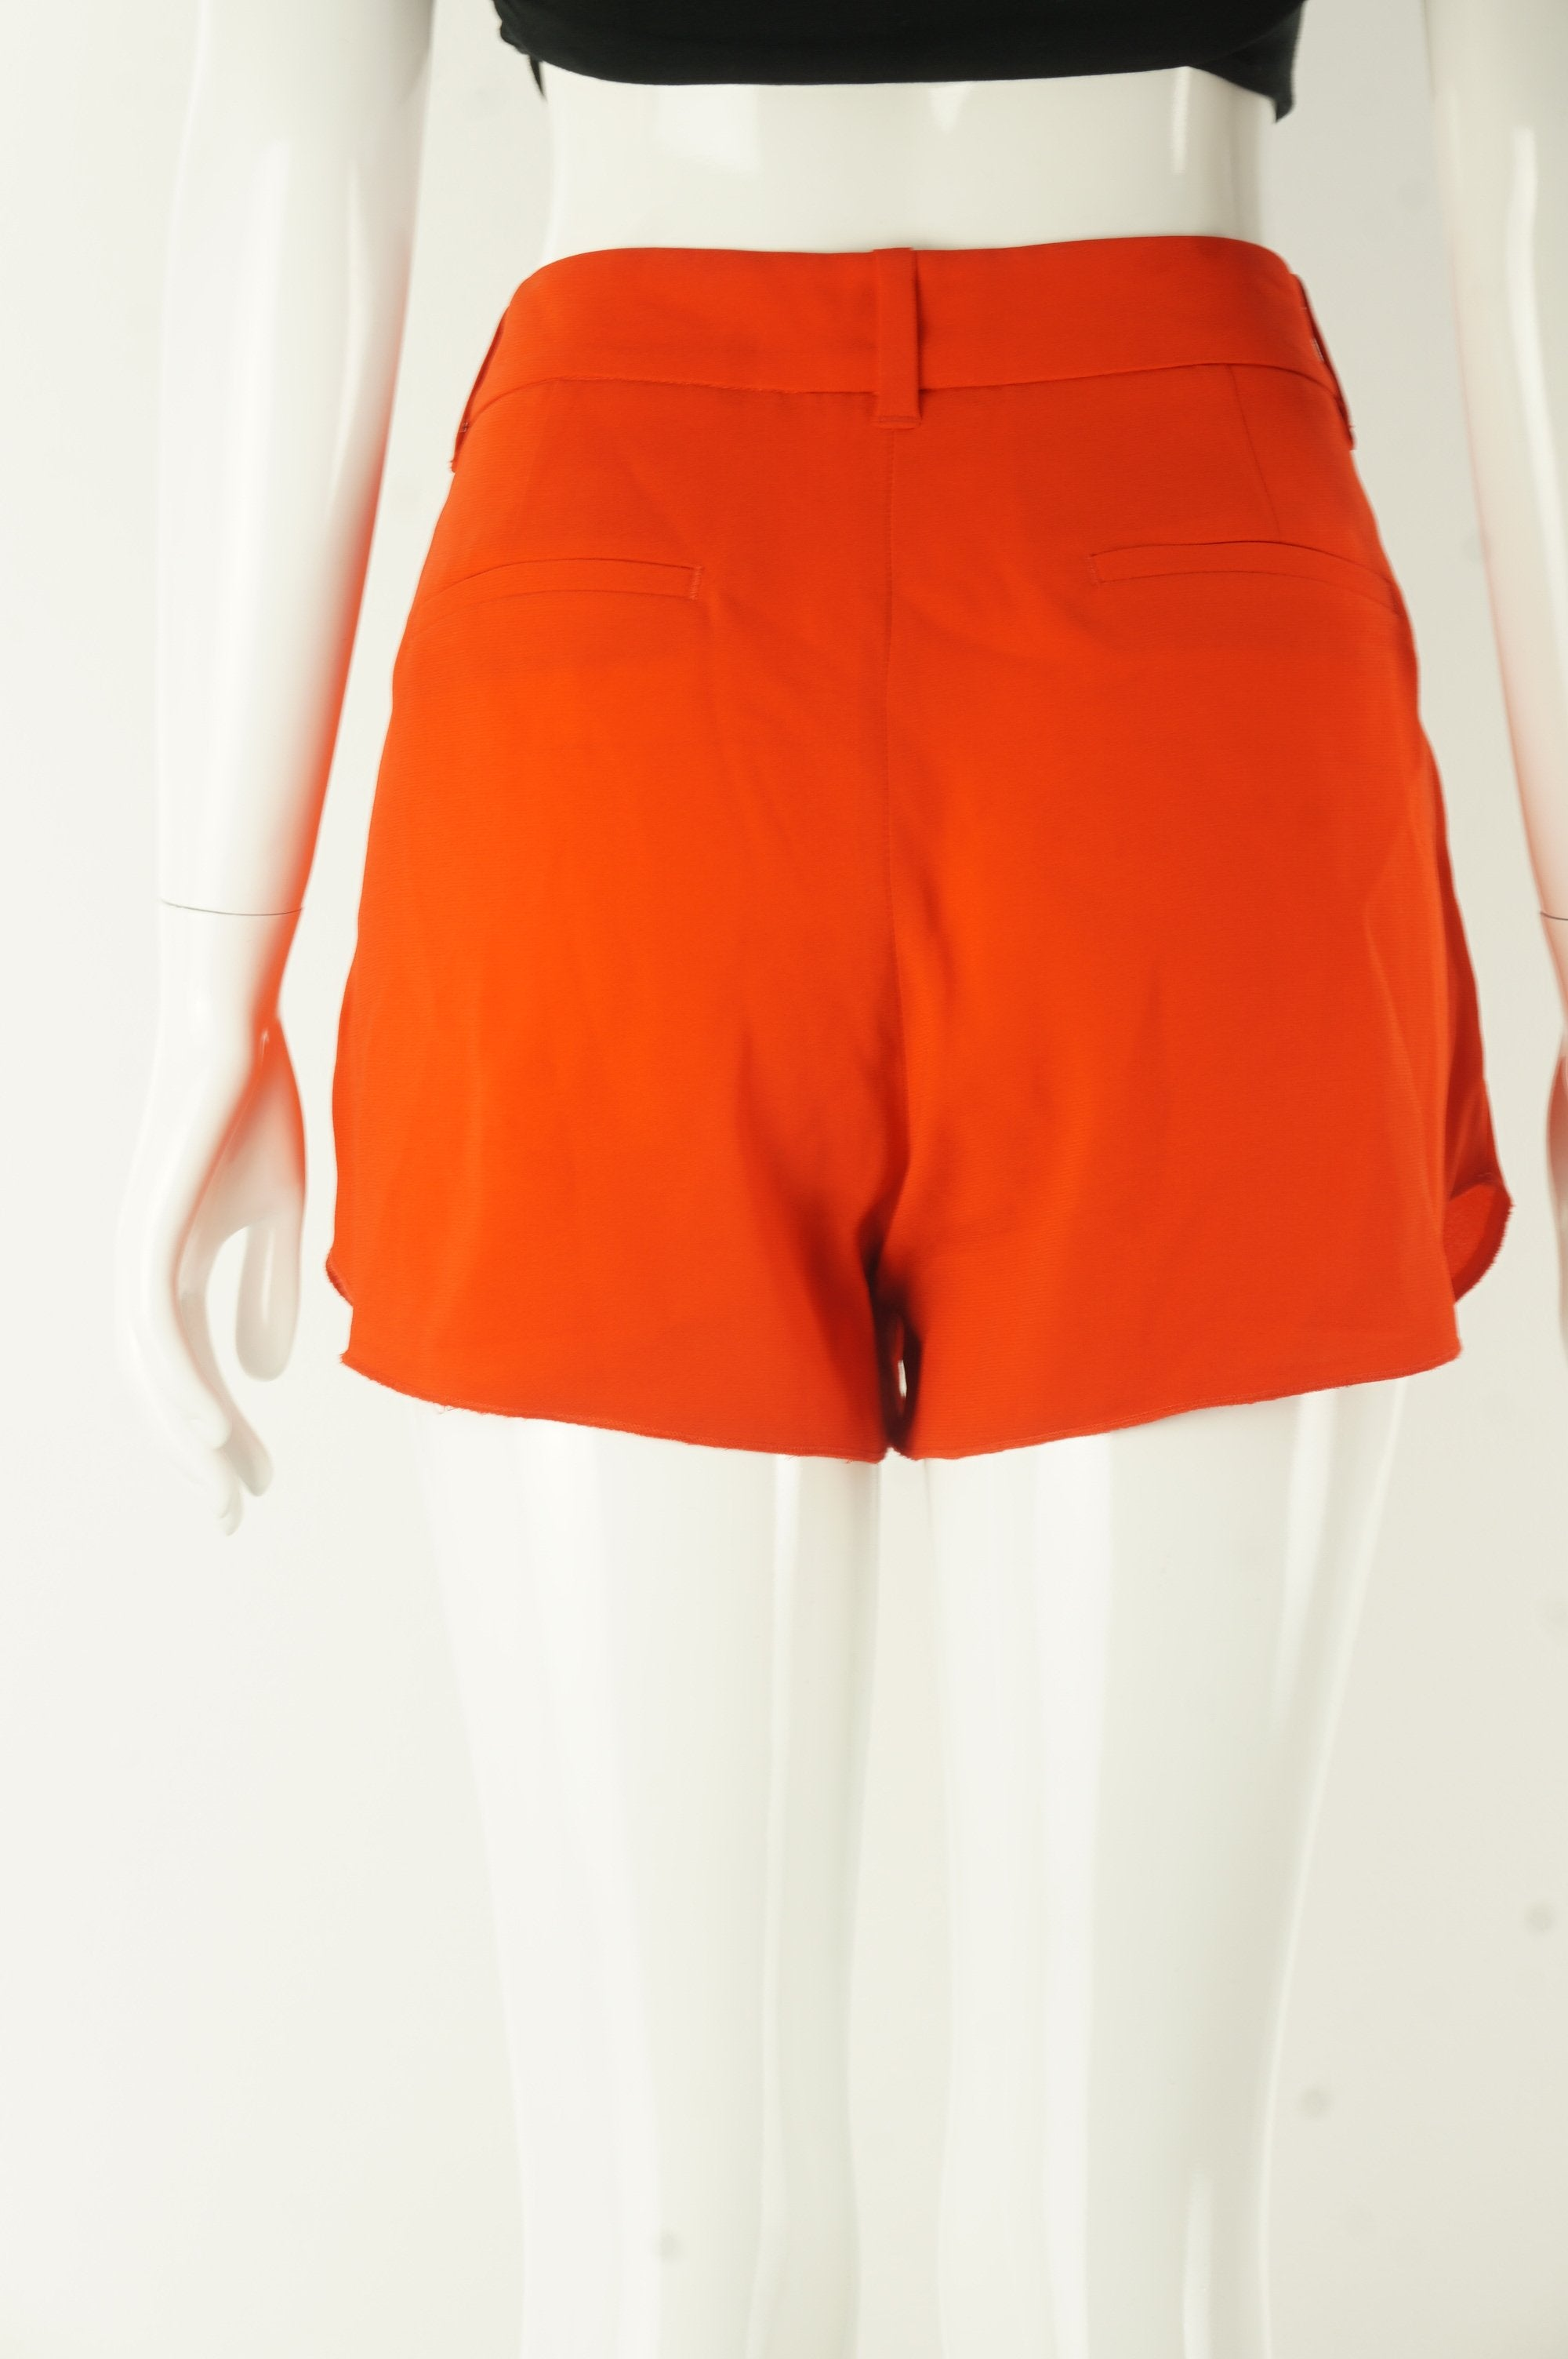 Babaton High Waisted Red Shorts, The cute bright red color that goes with your brillant personability. Pleats in the front. Pair with your simple bodysuit and you are set for the perfect summer weekend day!, Red, 77% Tracetate, 23% Polyester, women's Pants & Shorts, women's Red Pants & Shorts, Babaton women's Pants & Shorts, Aritzia high wasted shorts, Cute red women's shorts